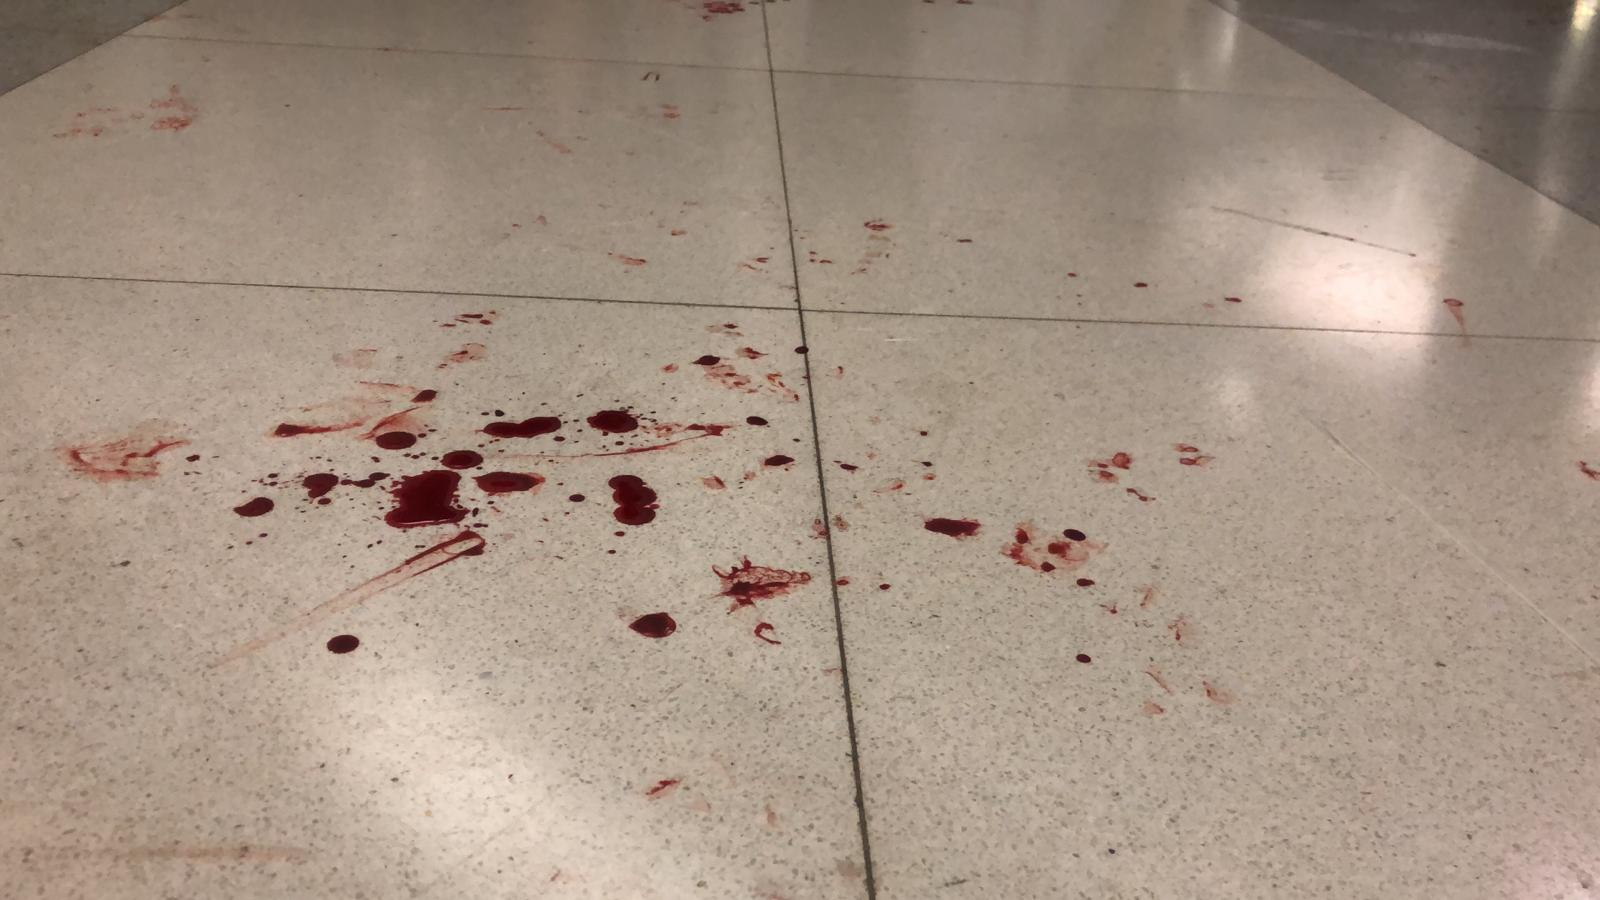 Blood stains seen on the floor of the subway station after police stormed it.